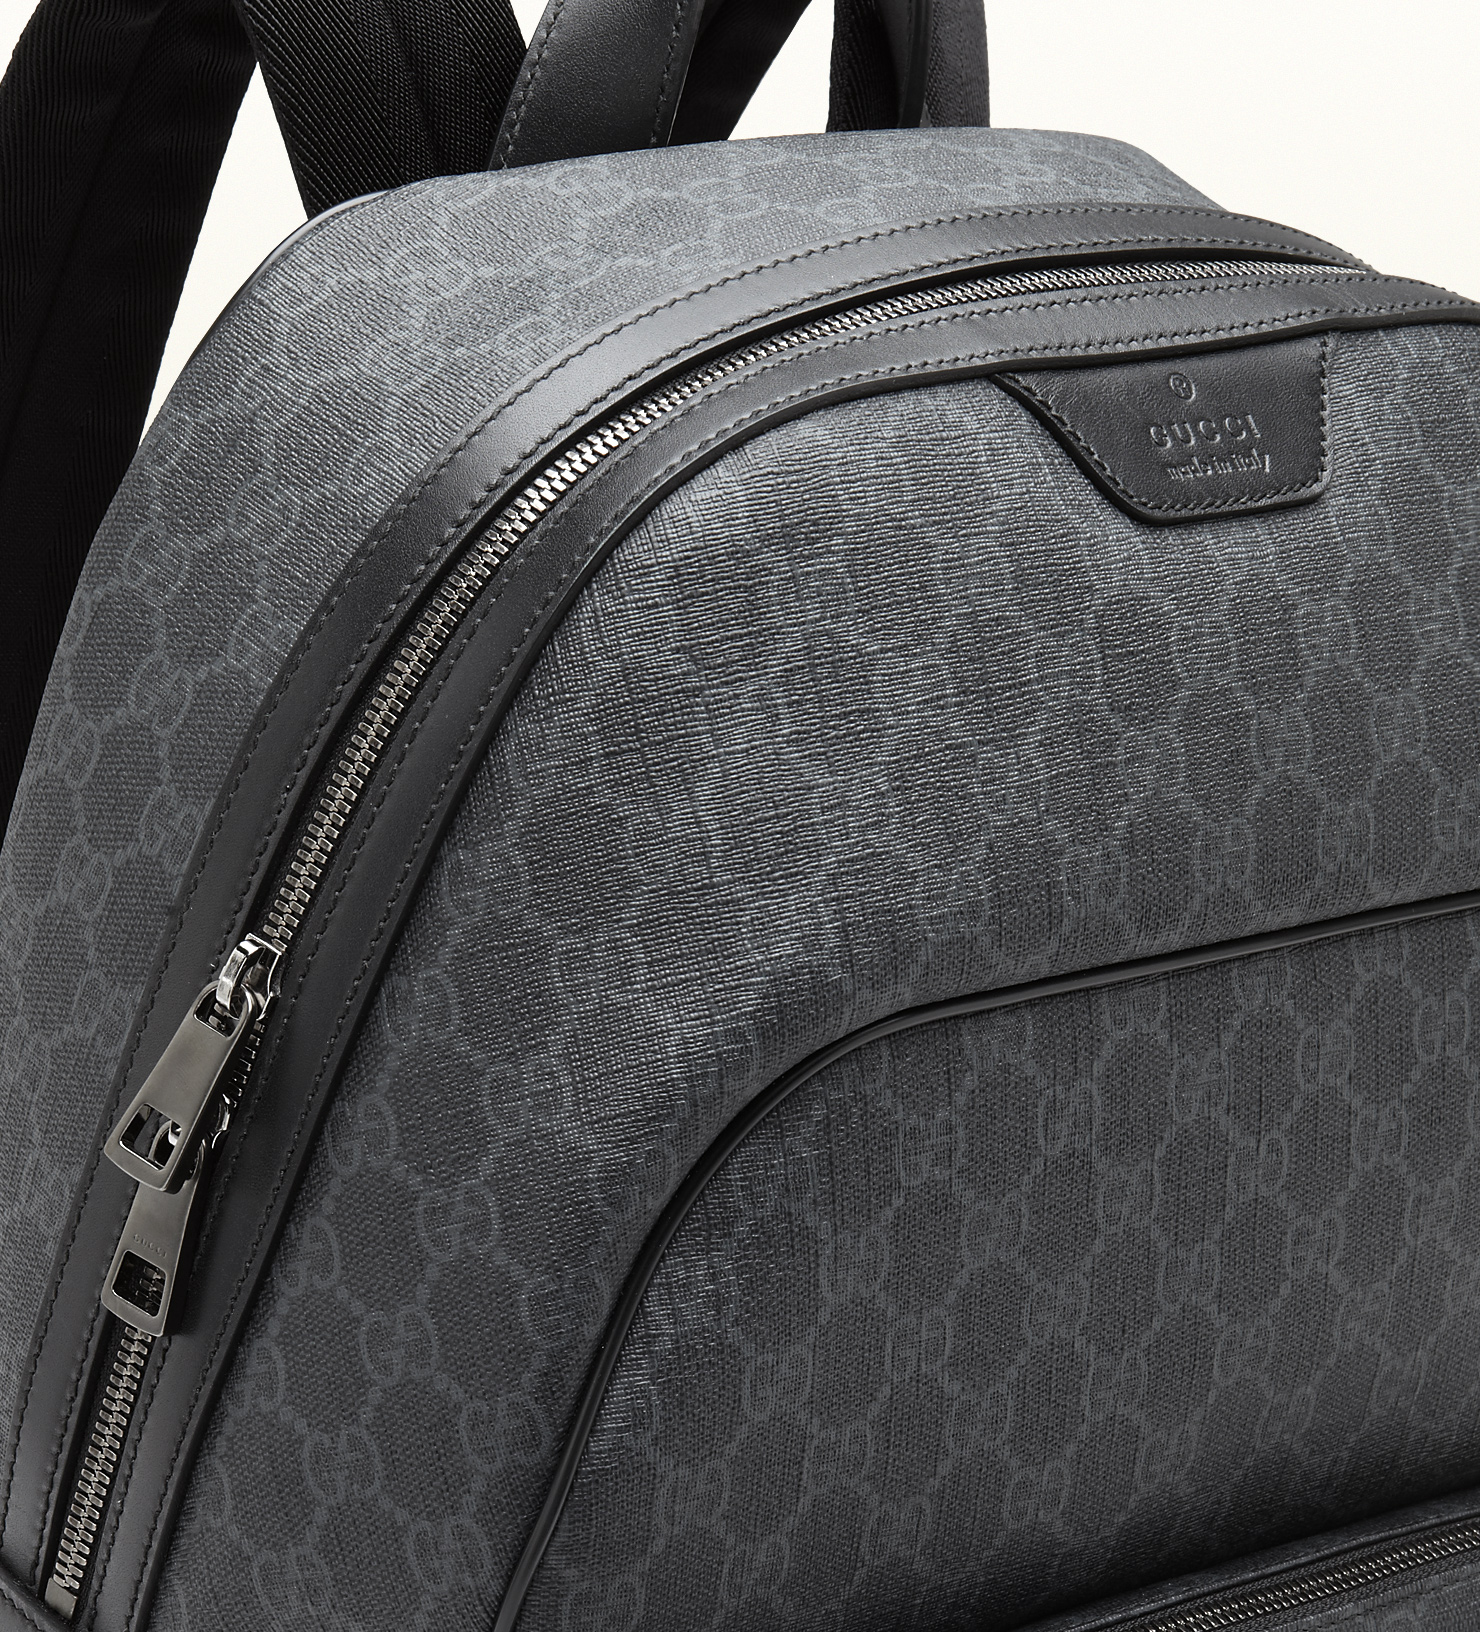 1cb86397d780 Lyst - Gucci Gg Supreme Canvas Backpack in Gray for Men